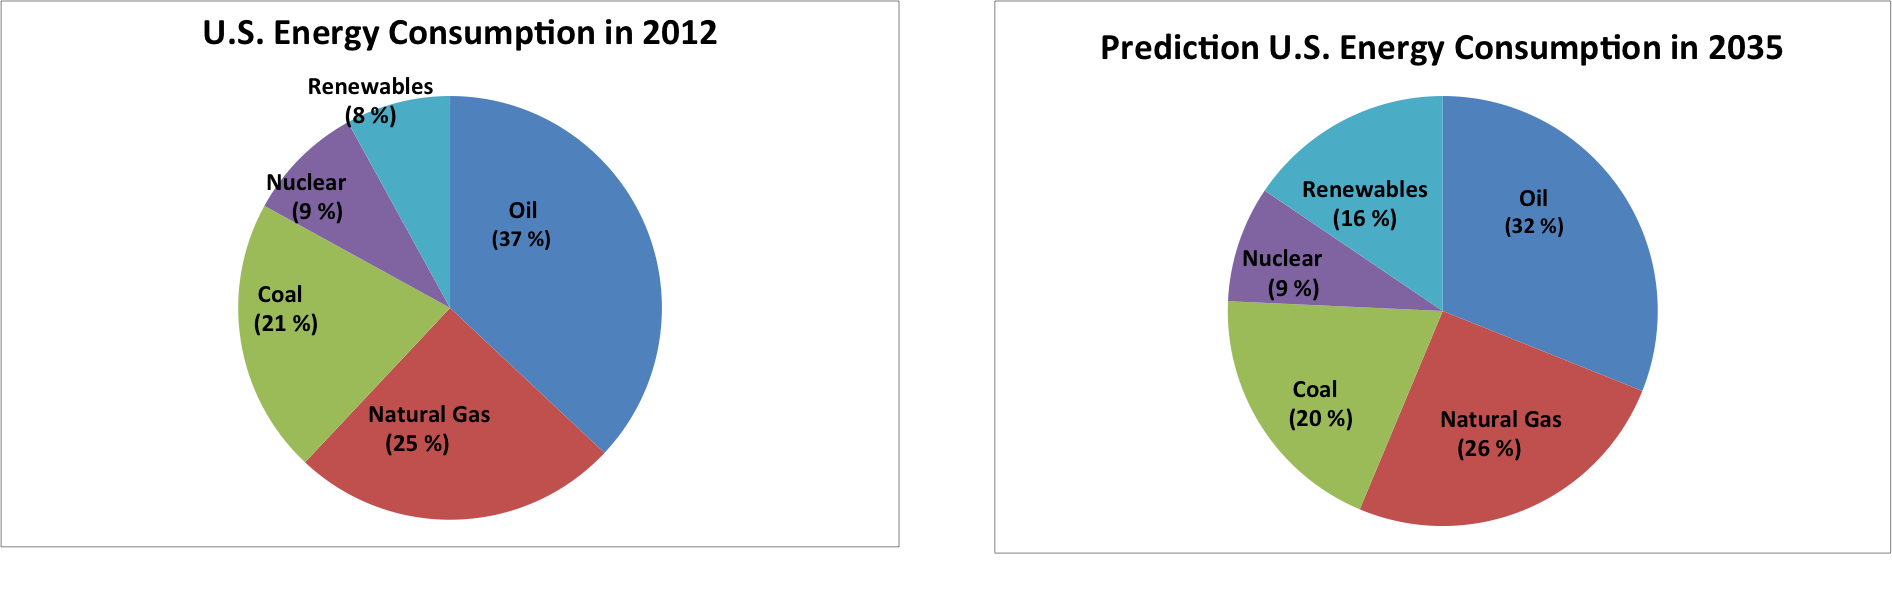 Two pie charts showing US energy consumption in 2012 and predicted in 2035. Refer to text description below.